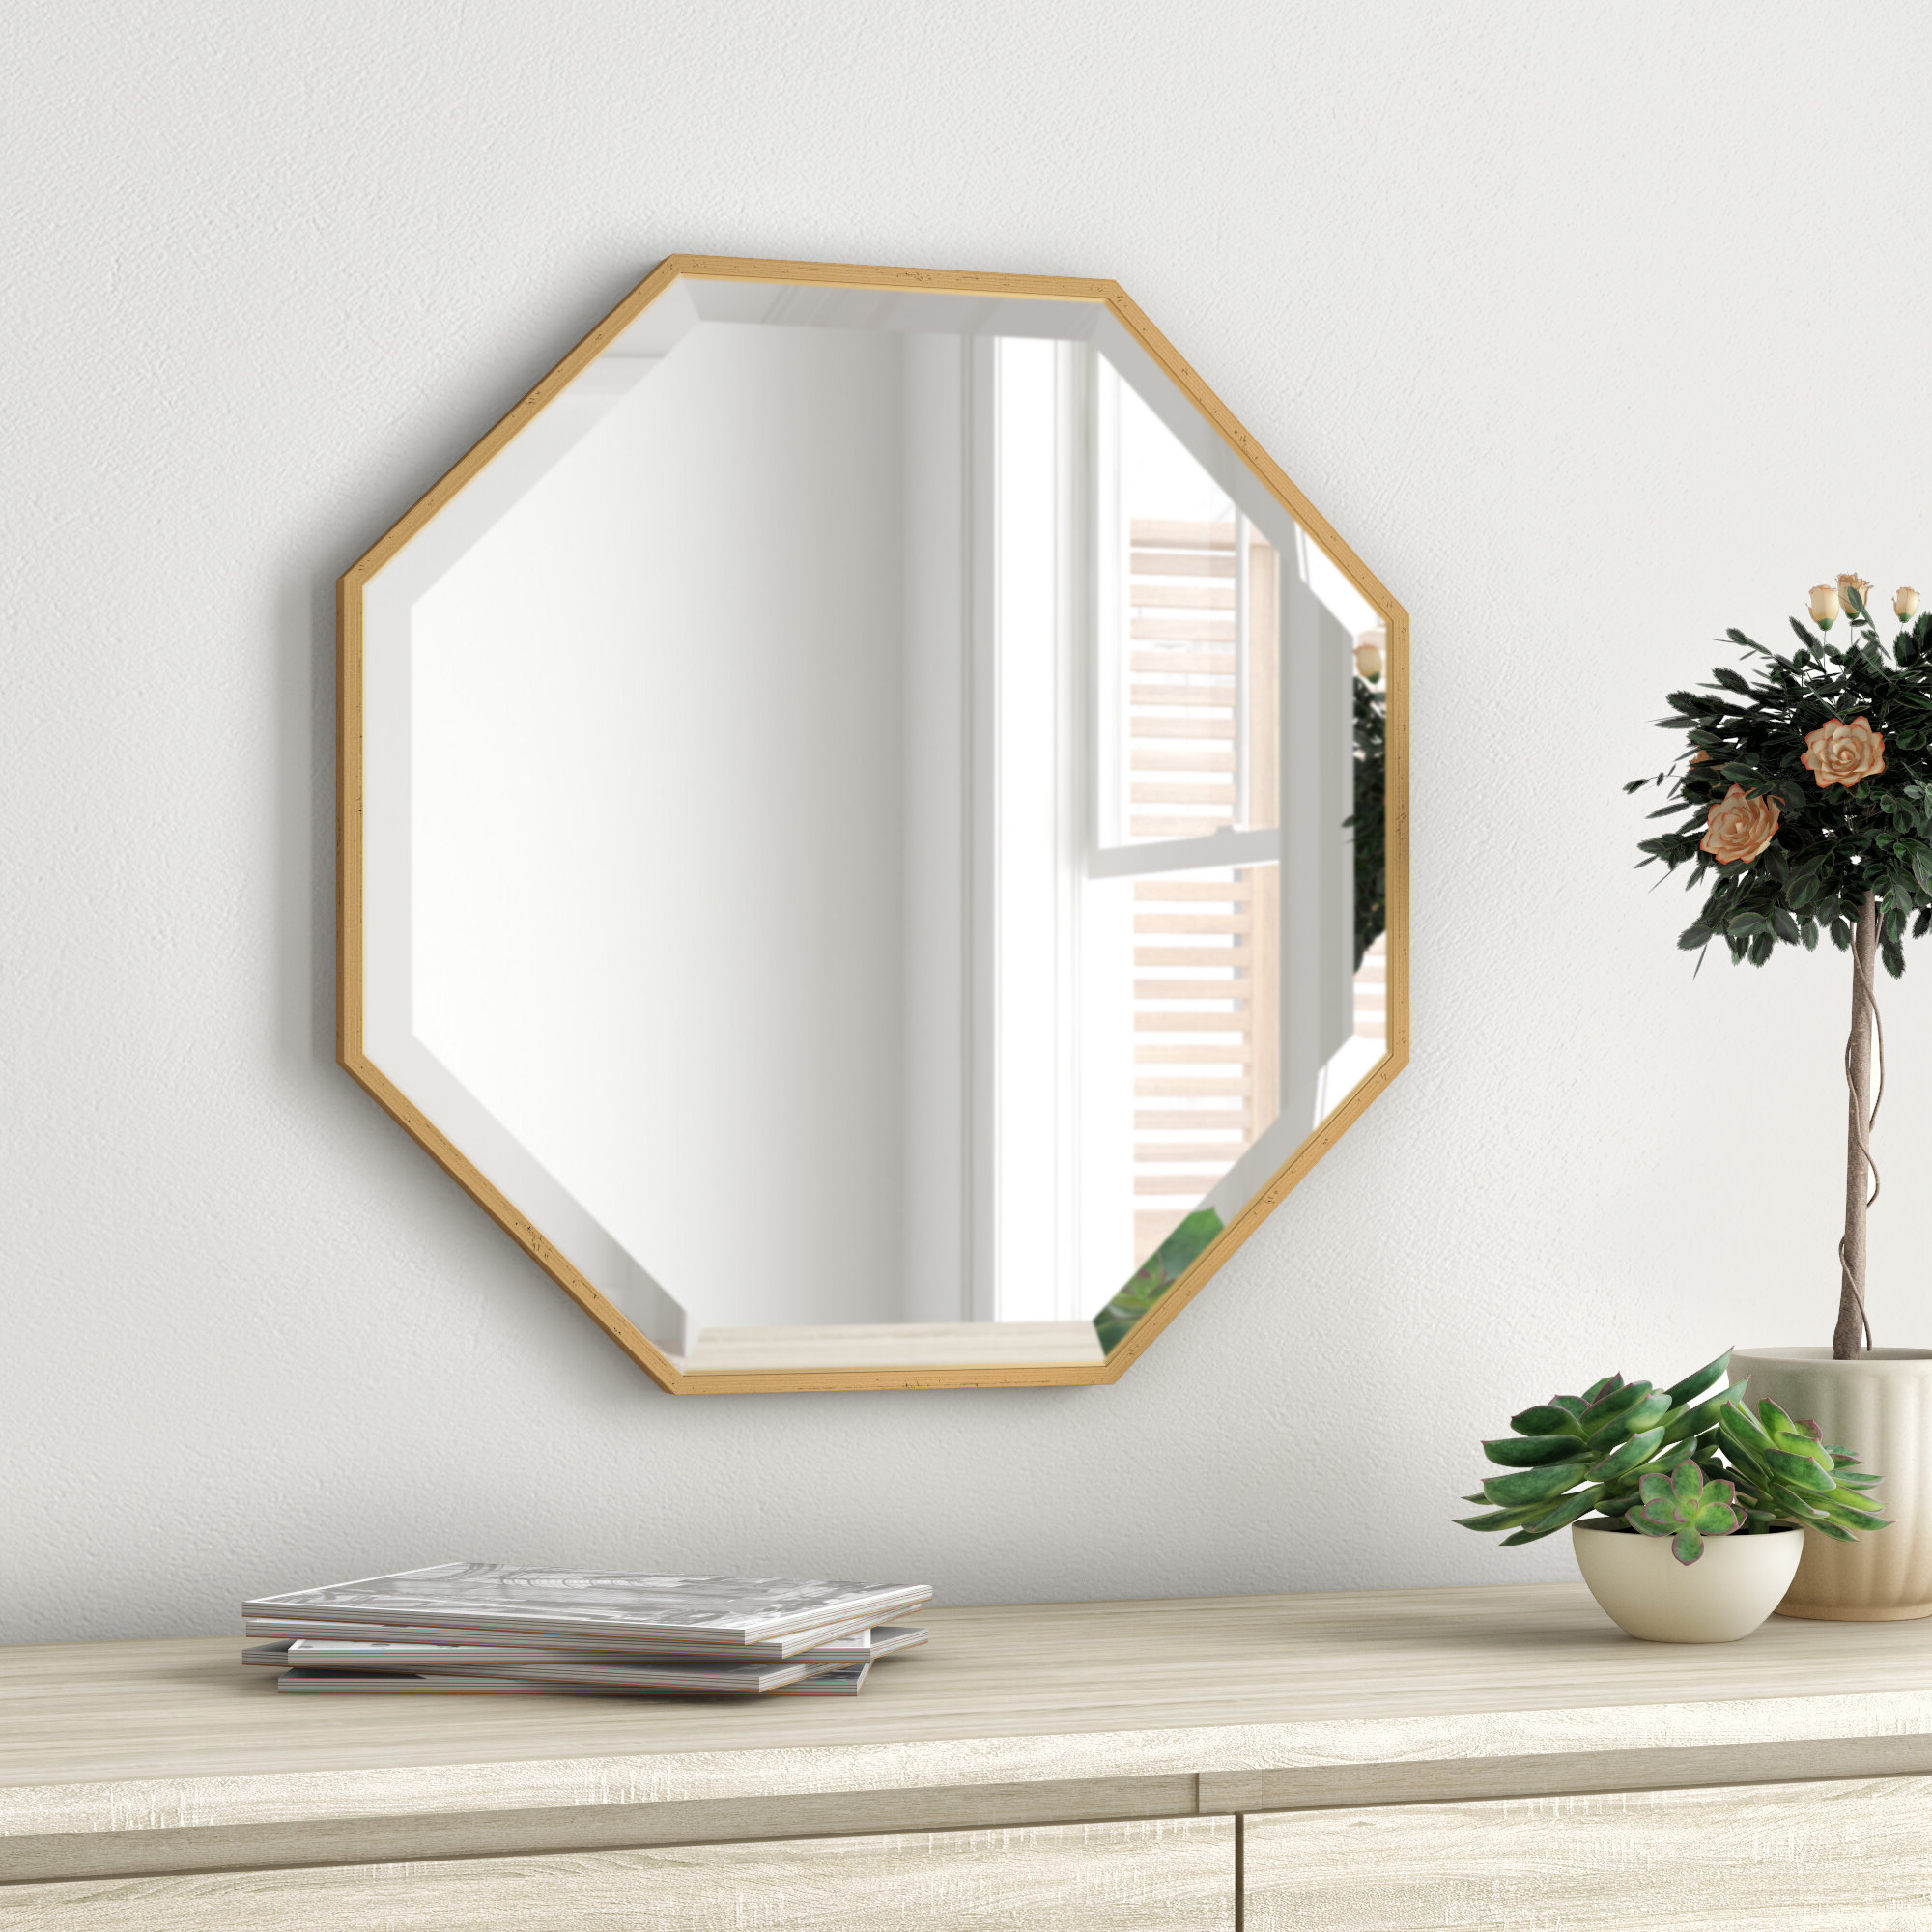 Morganton Modern & Contemporary Beveled Accent Mirror For Well Known Shildon Beveled Accent Mirrors (View 7 of 20)